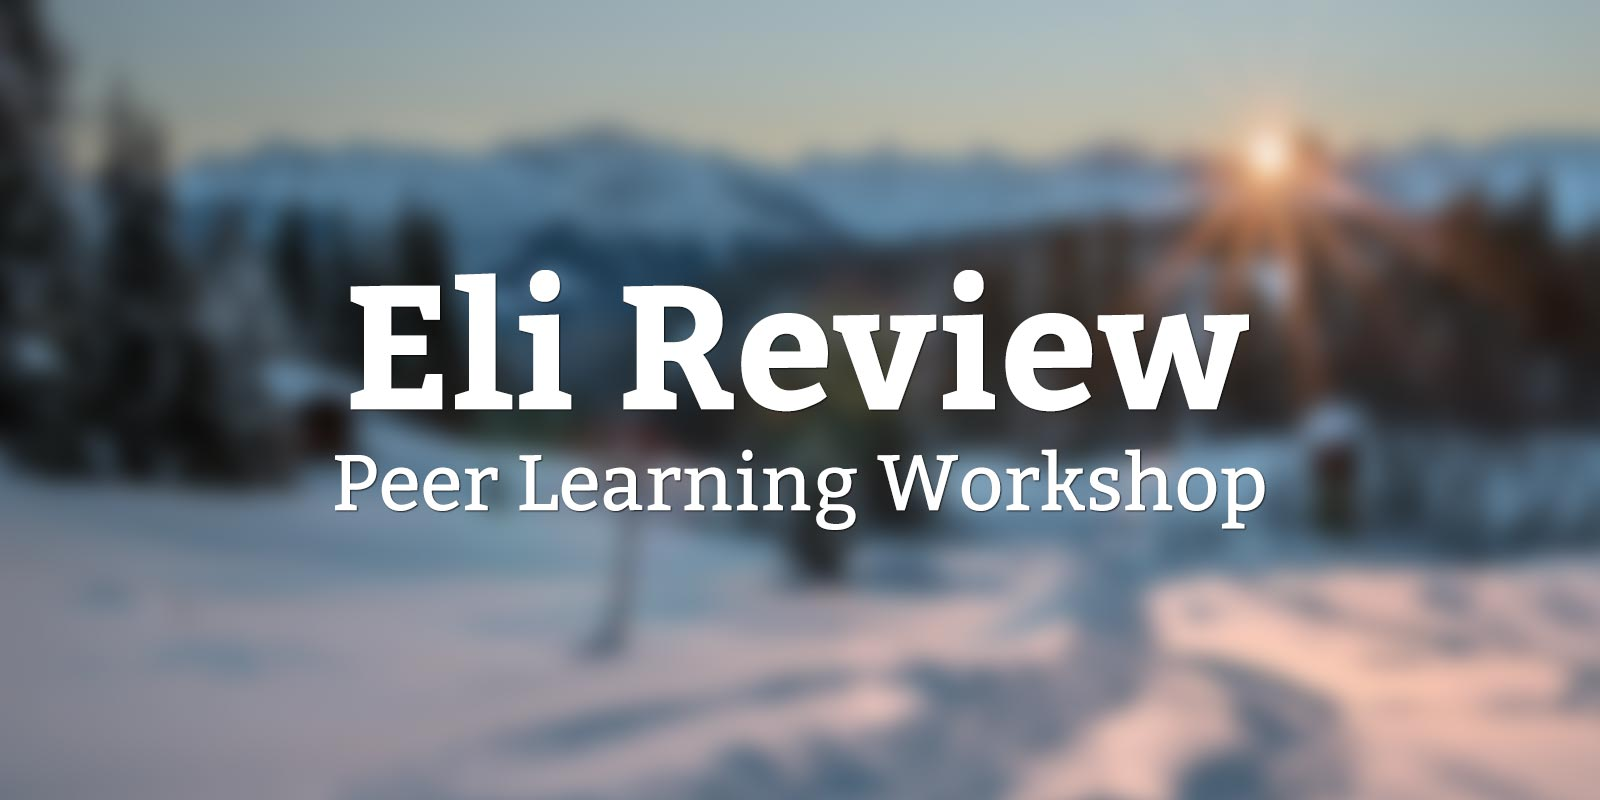 Eli Review Peer Learning Workshop Announcement